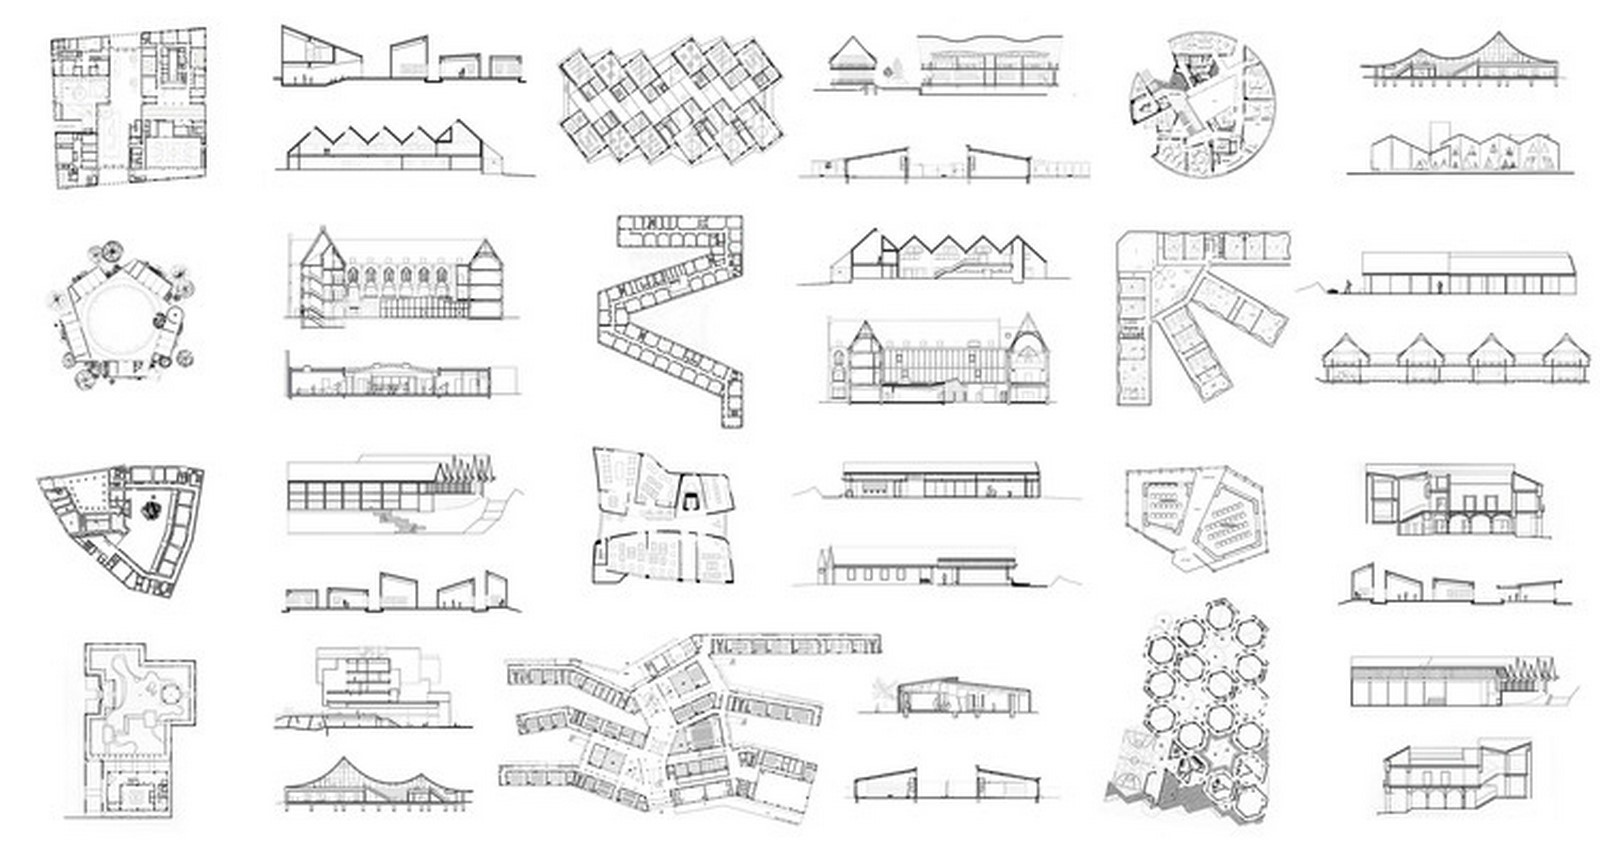 Role of pedagogy in architecture